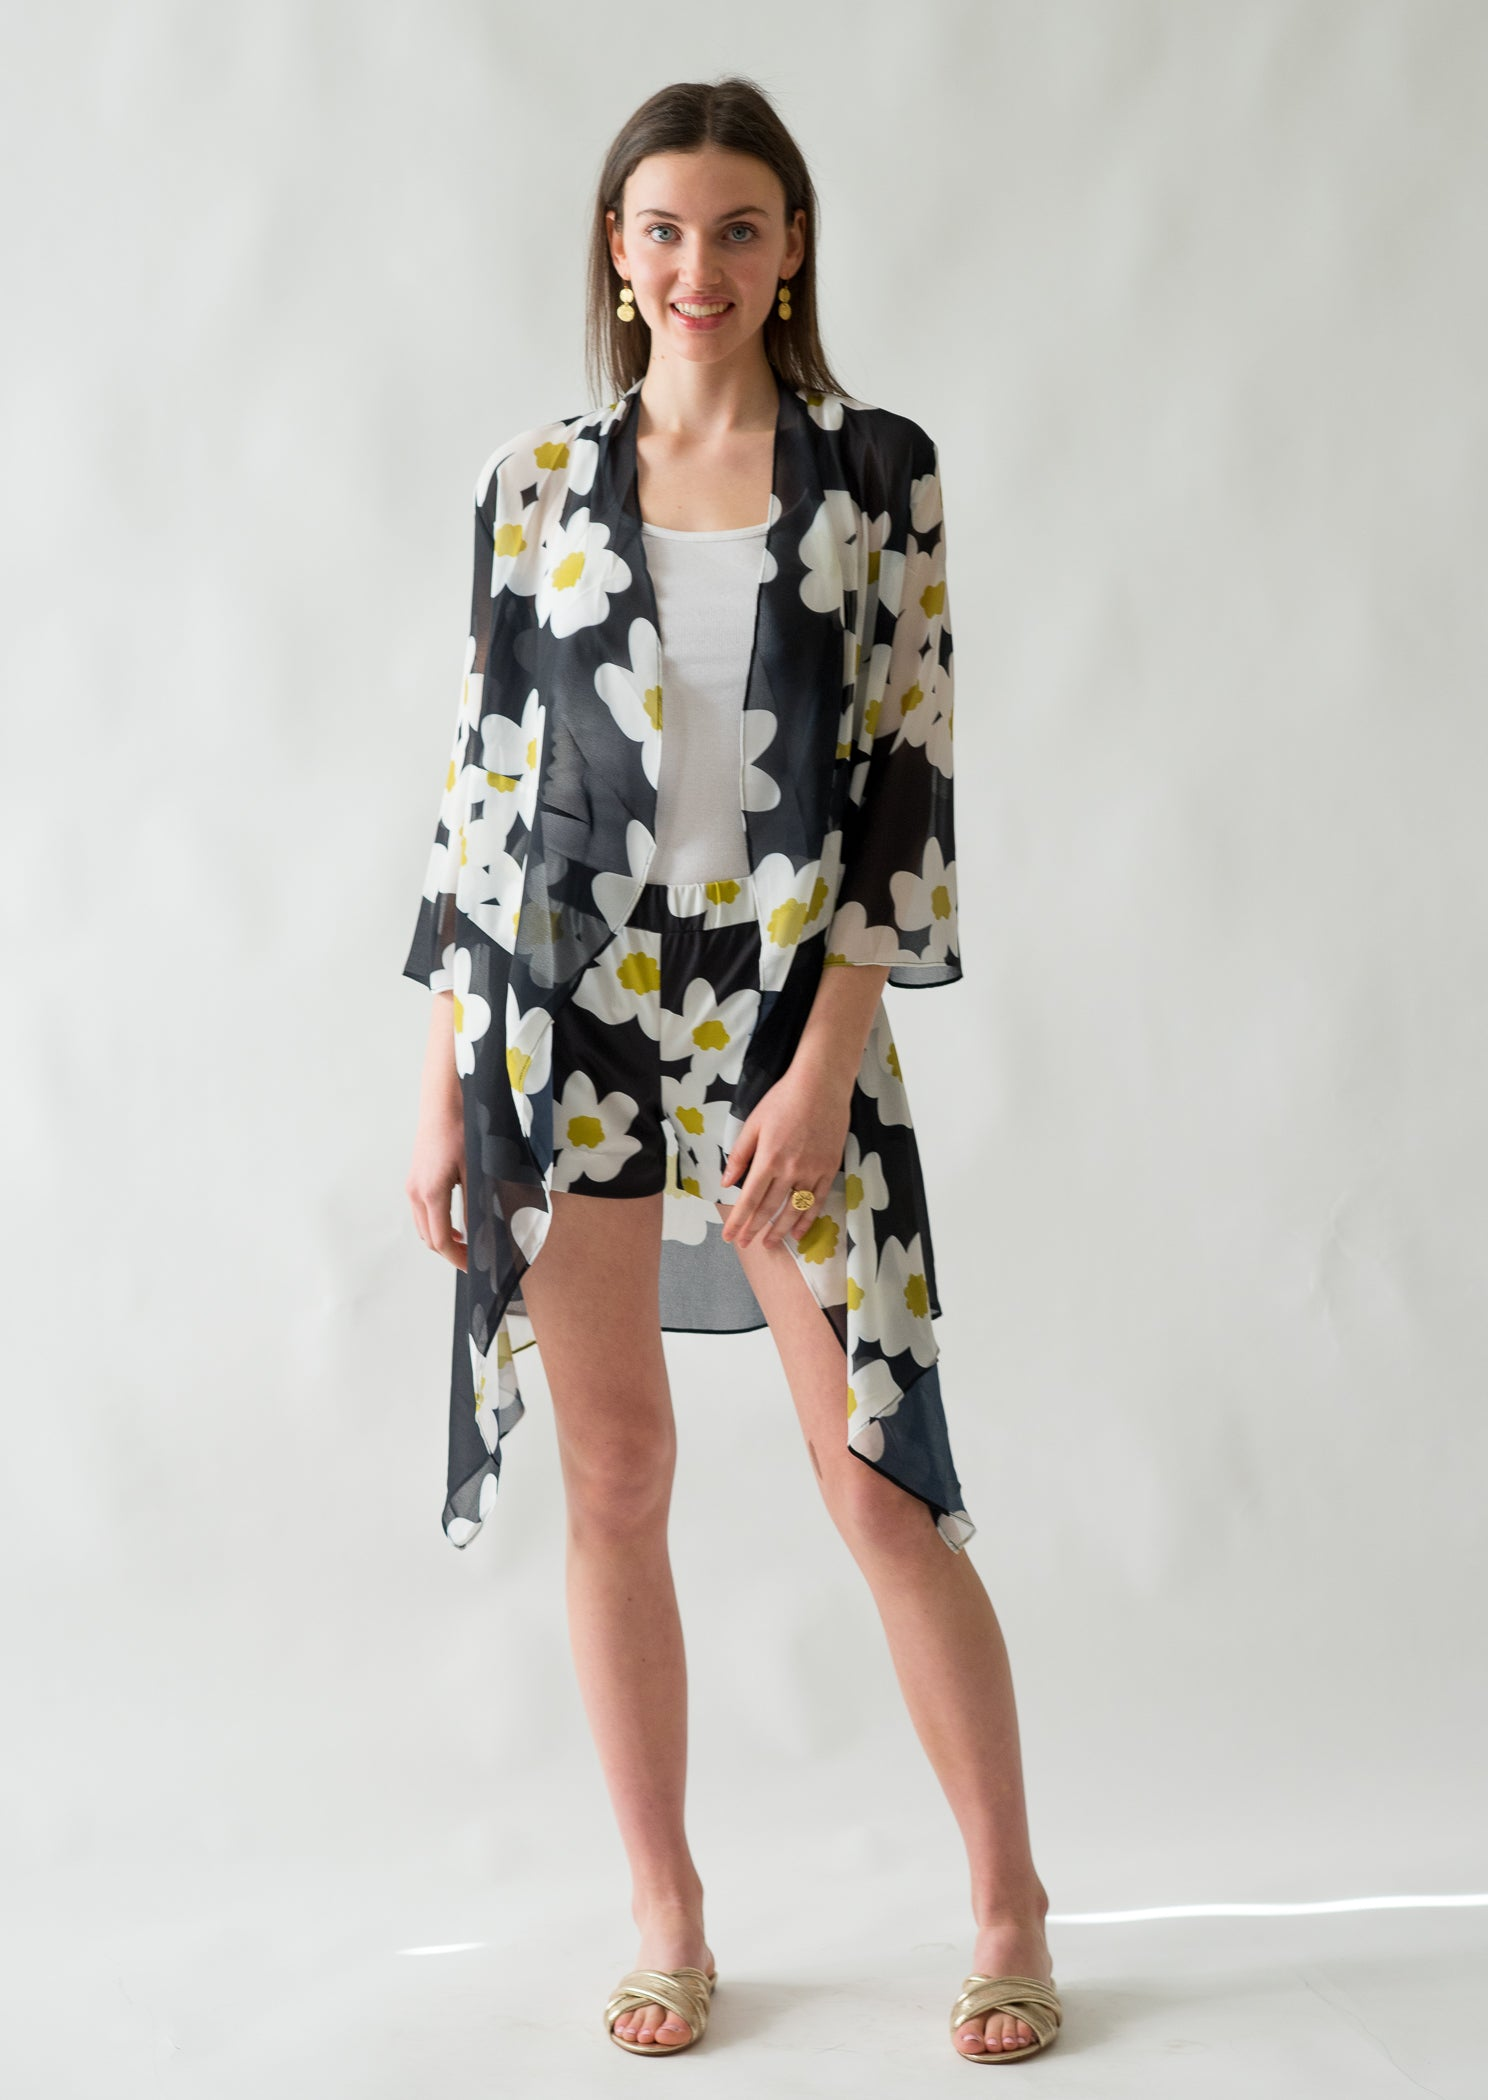 Nadia 3 way top in Mod Floral - Elizabeth Ackerman New York